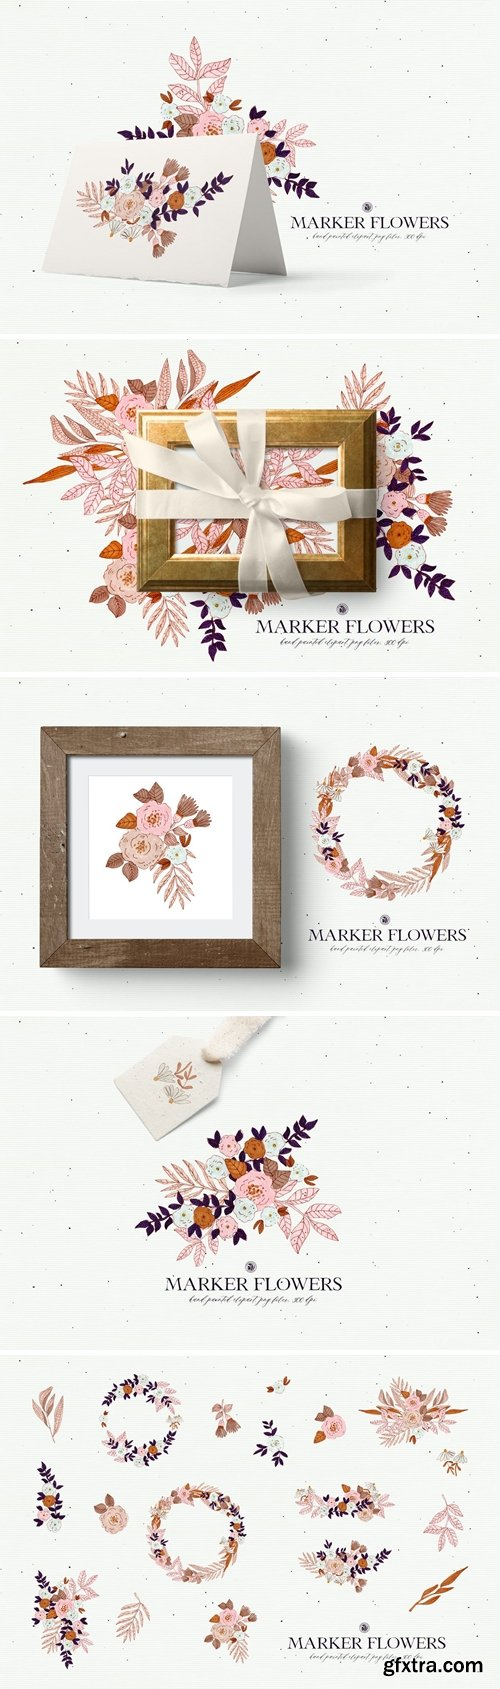 Marker Flowers - hand drawn floral clipart